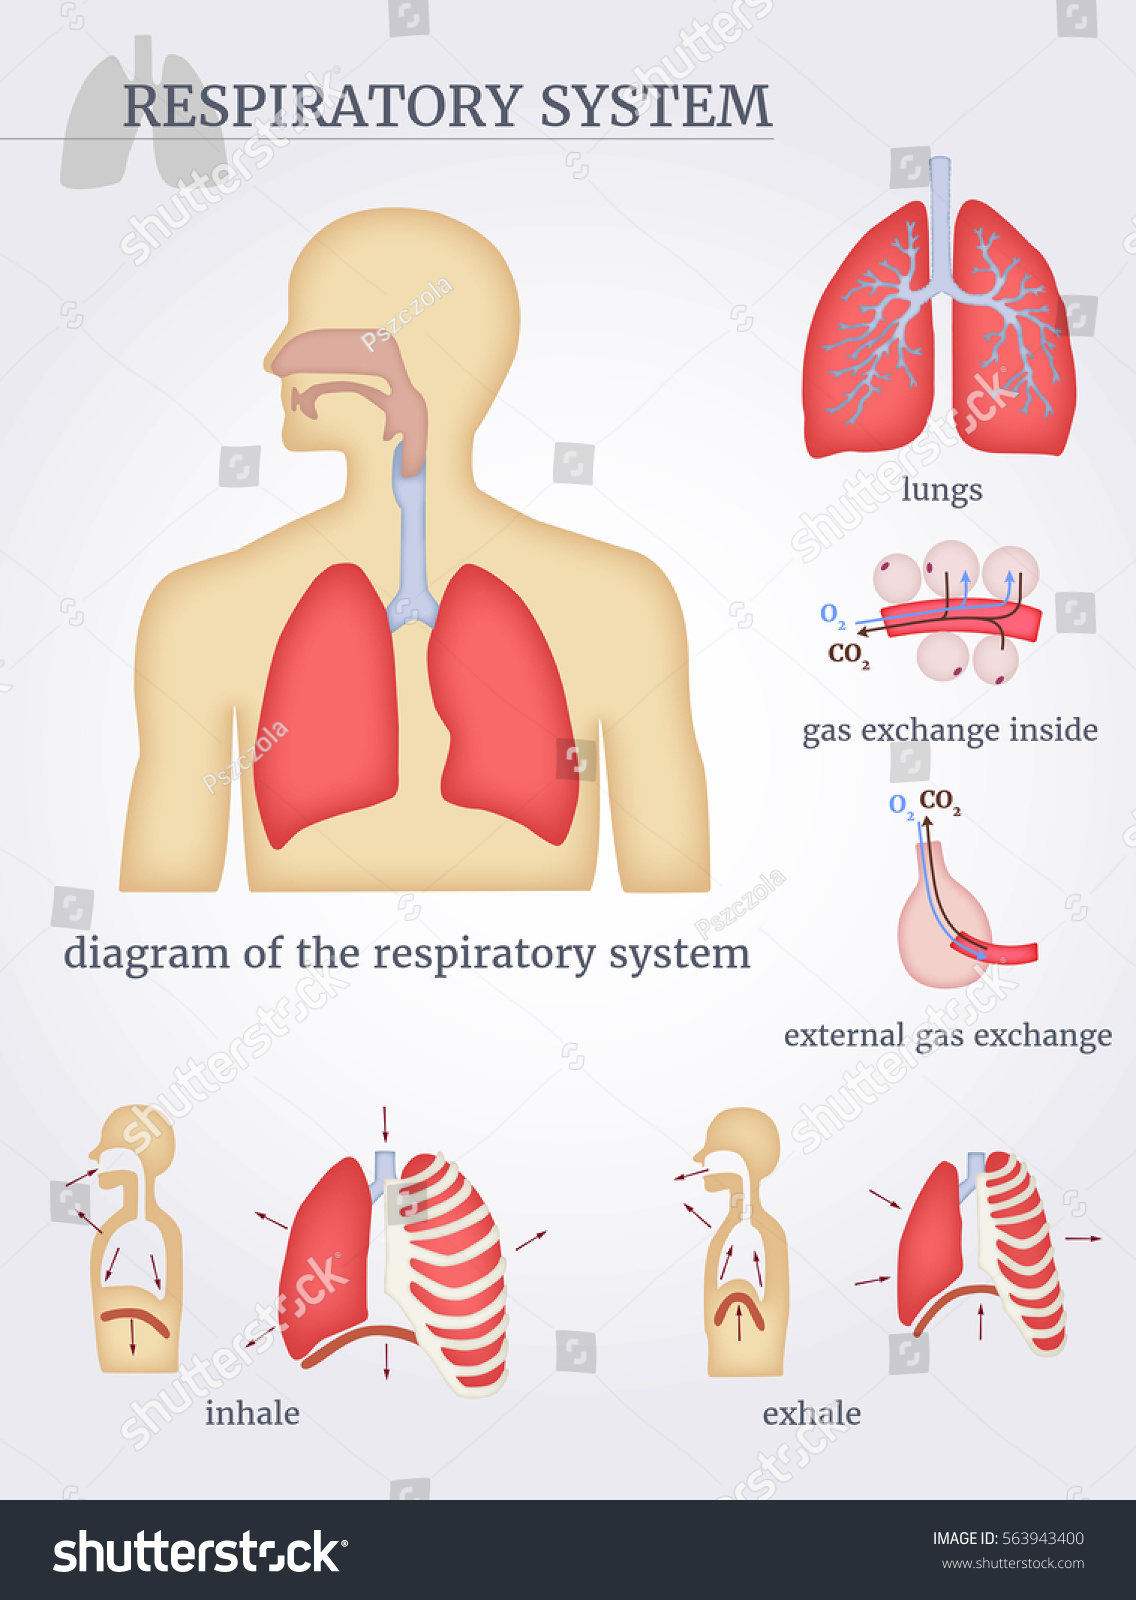 respiratory system diagram respiratory system lungs stock. Black Bedroom Furniture Sets. Home Design Ideas